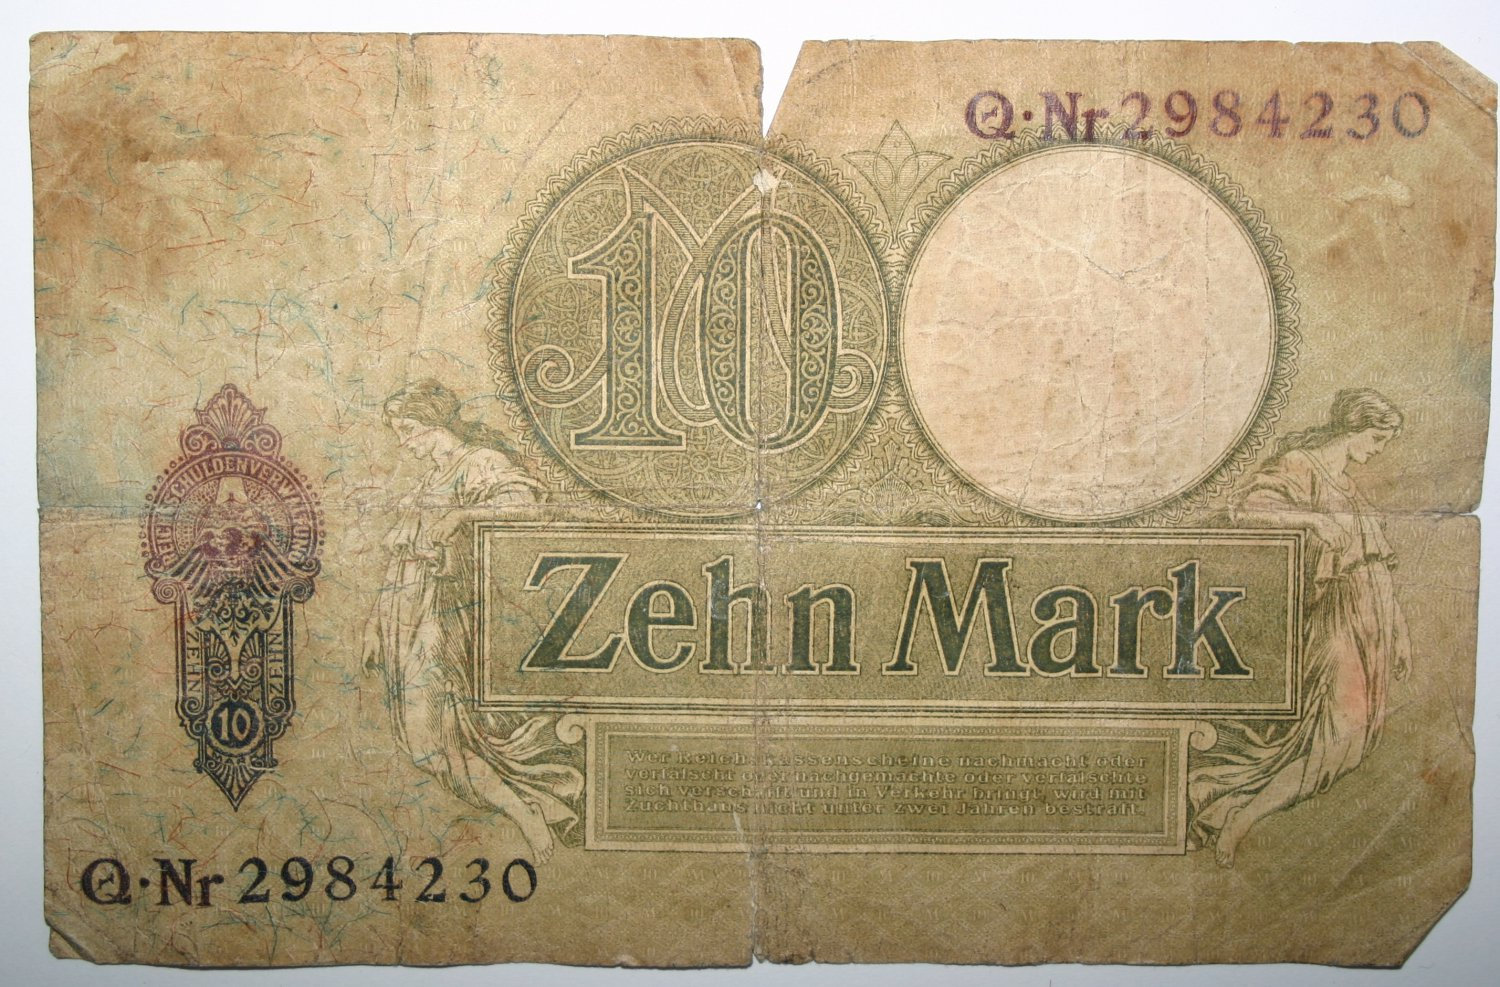 Banknote Reichskassenschein 10 Mark Berlin den 6.Oktober 1906 German Money Note